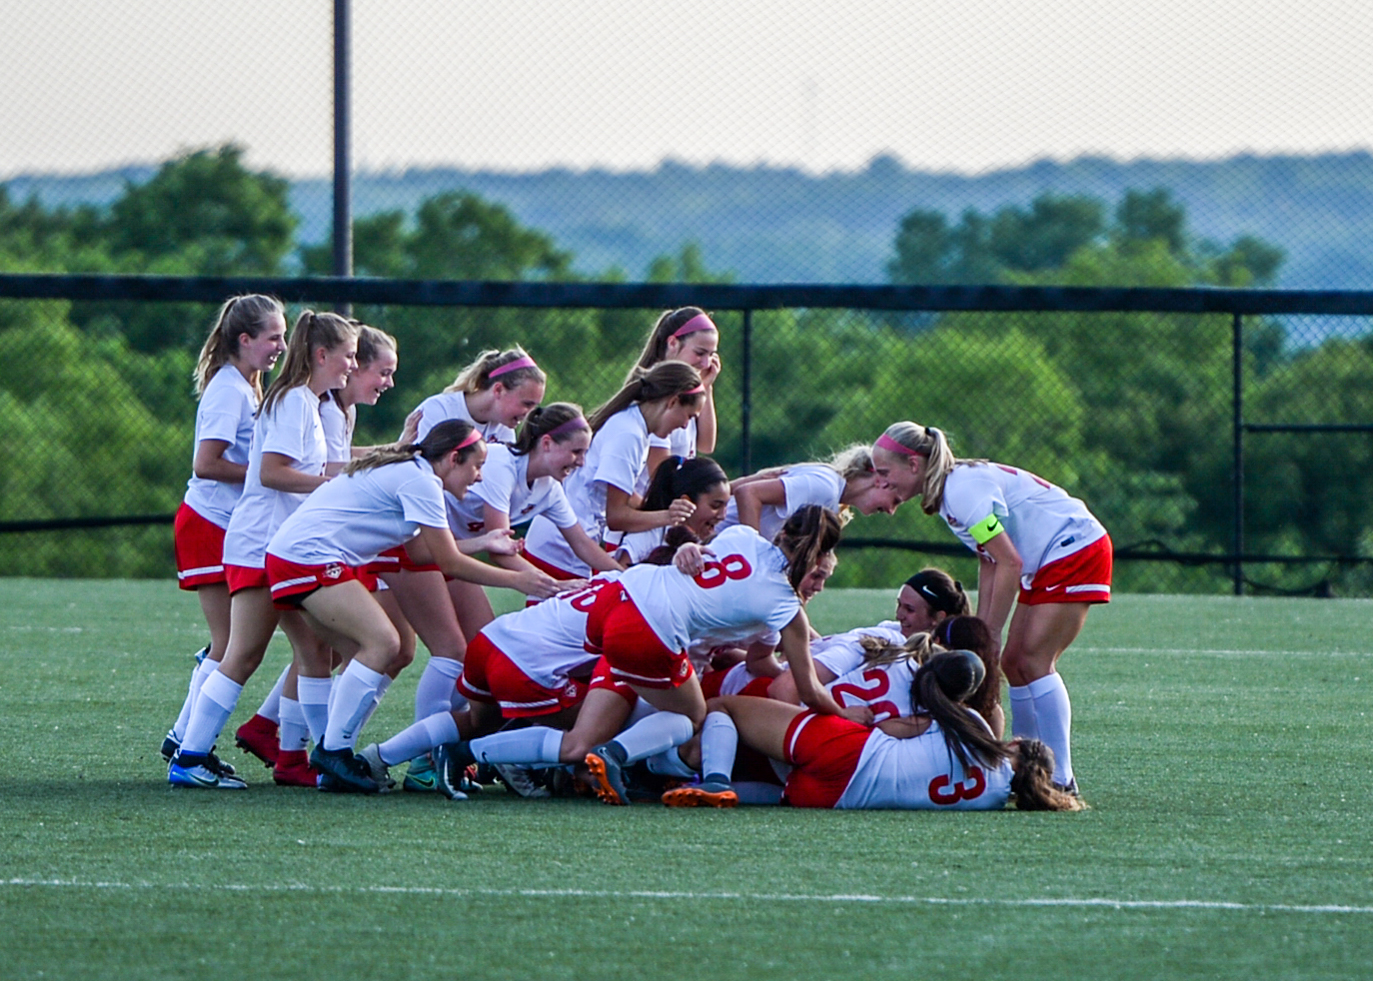 TODD NUGENT/Special to the Citizen The Park Hill girls soccer team celebrates after picking up a victory against St. Teresa's Academy in a Class 4 quarterfinal game on Saturday, May 26 at the Park Hill District Soccer Complex in Riverside, Mo.